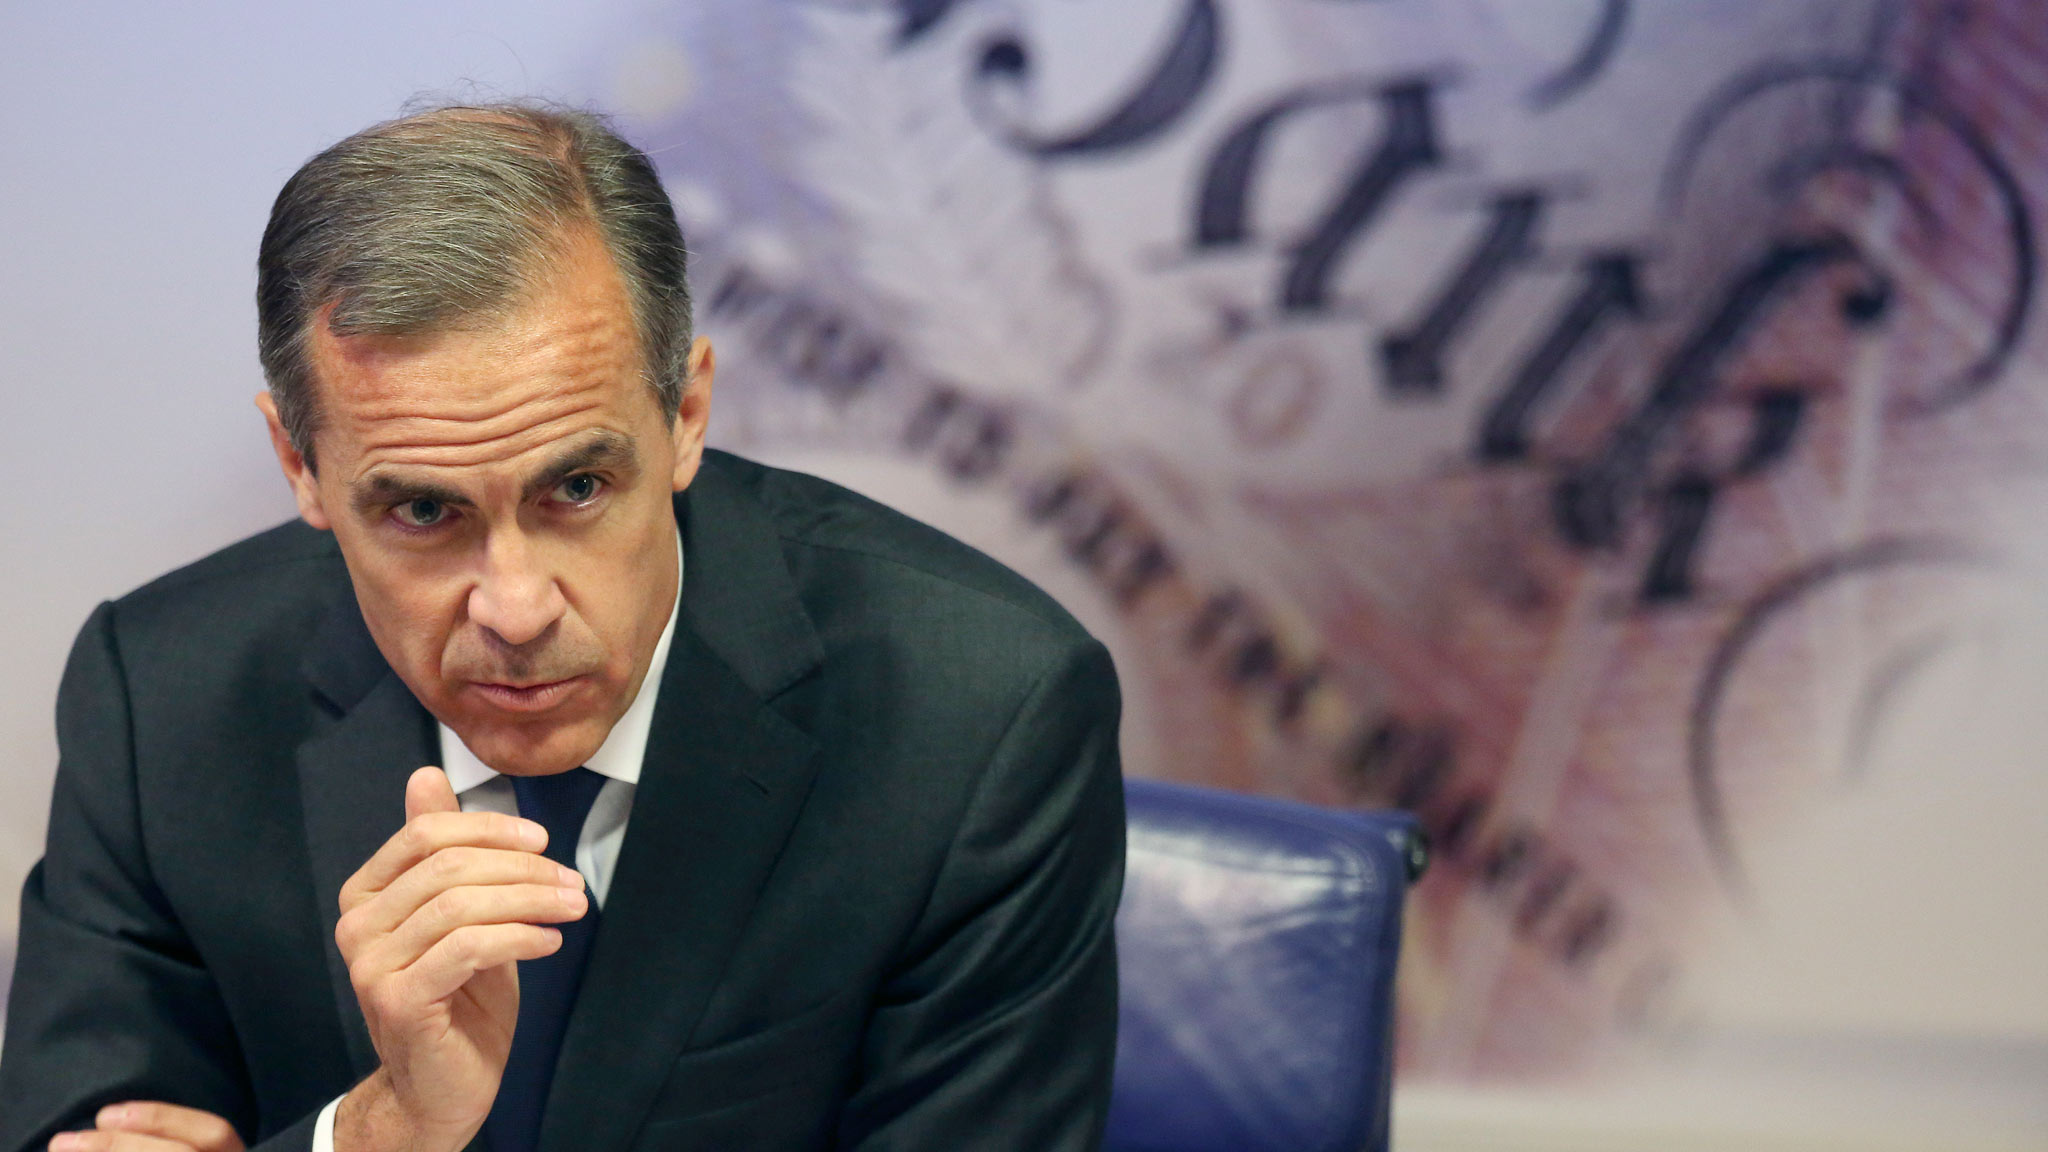 Bank Of England Governor Mark Carney Hosts Financial Stability Report News Conference